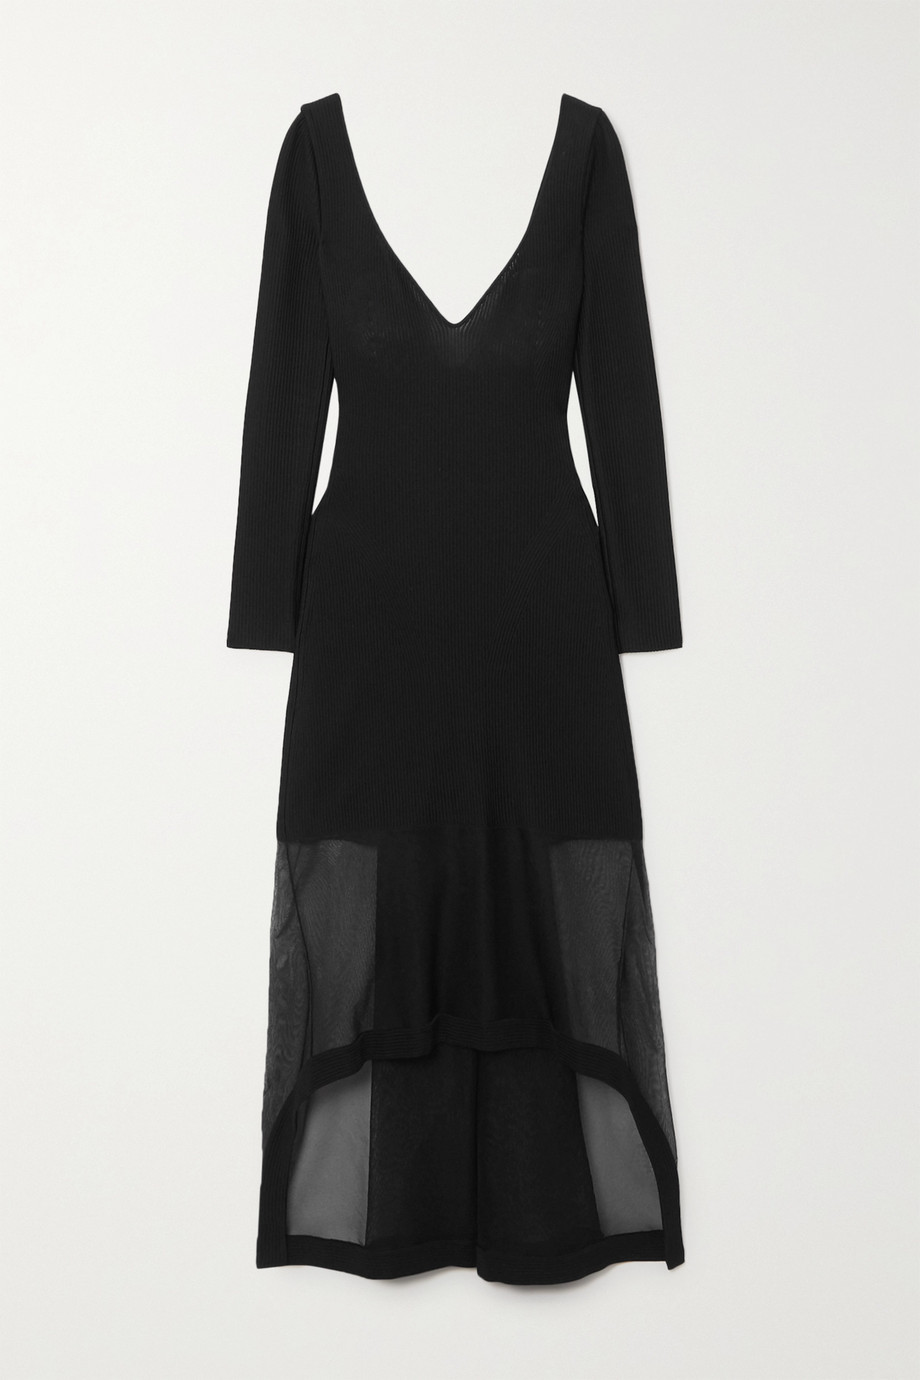 ALEXANDER MCQUEEN Layered ribbed-knit and tulle dress